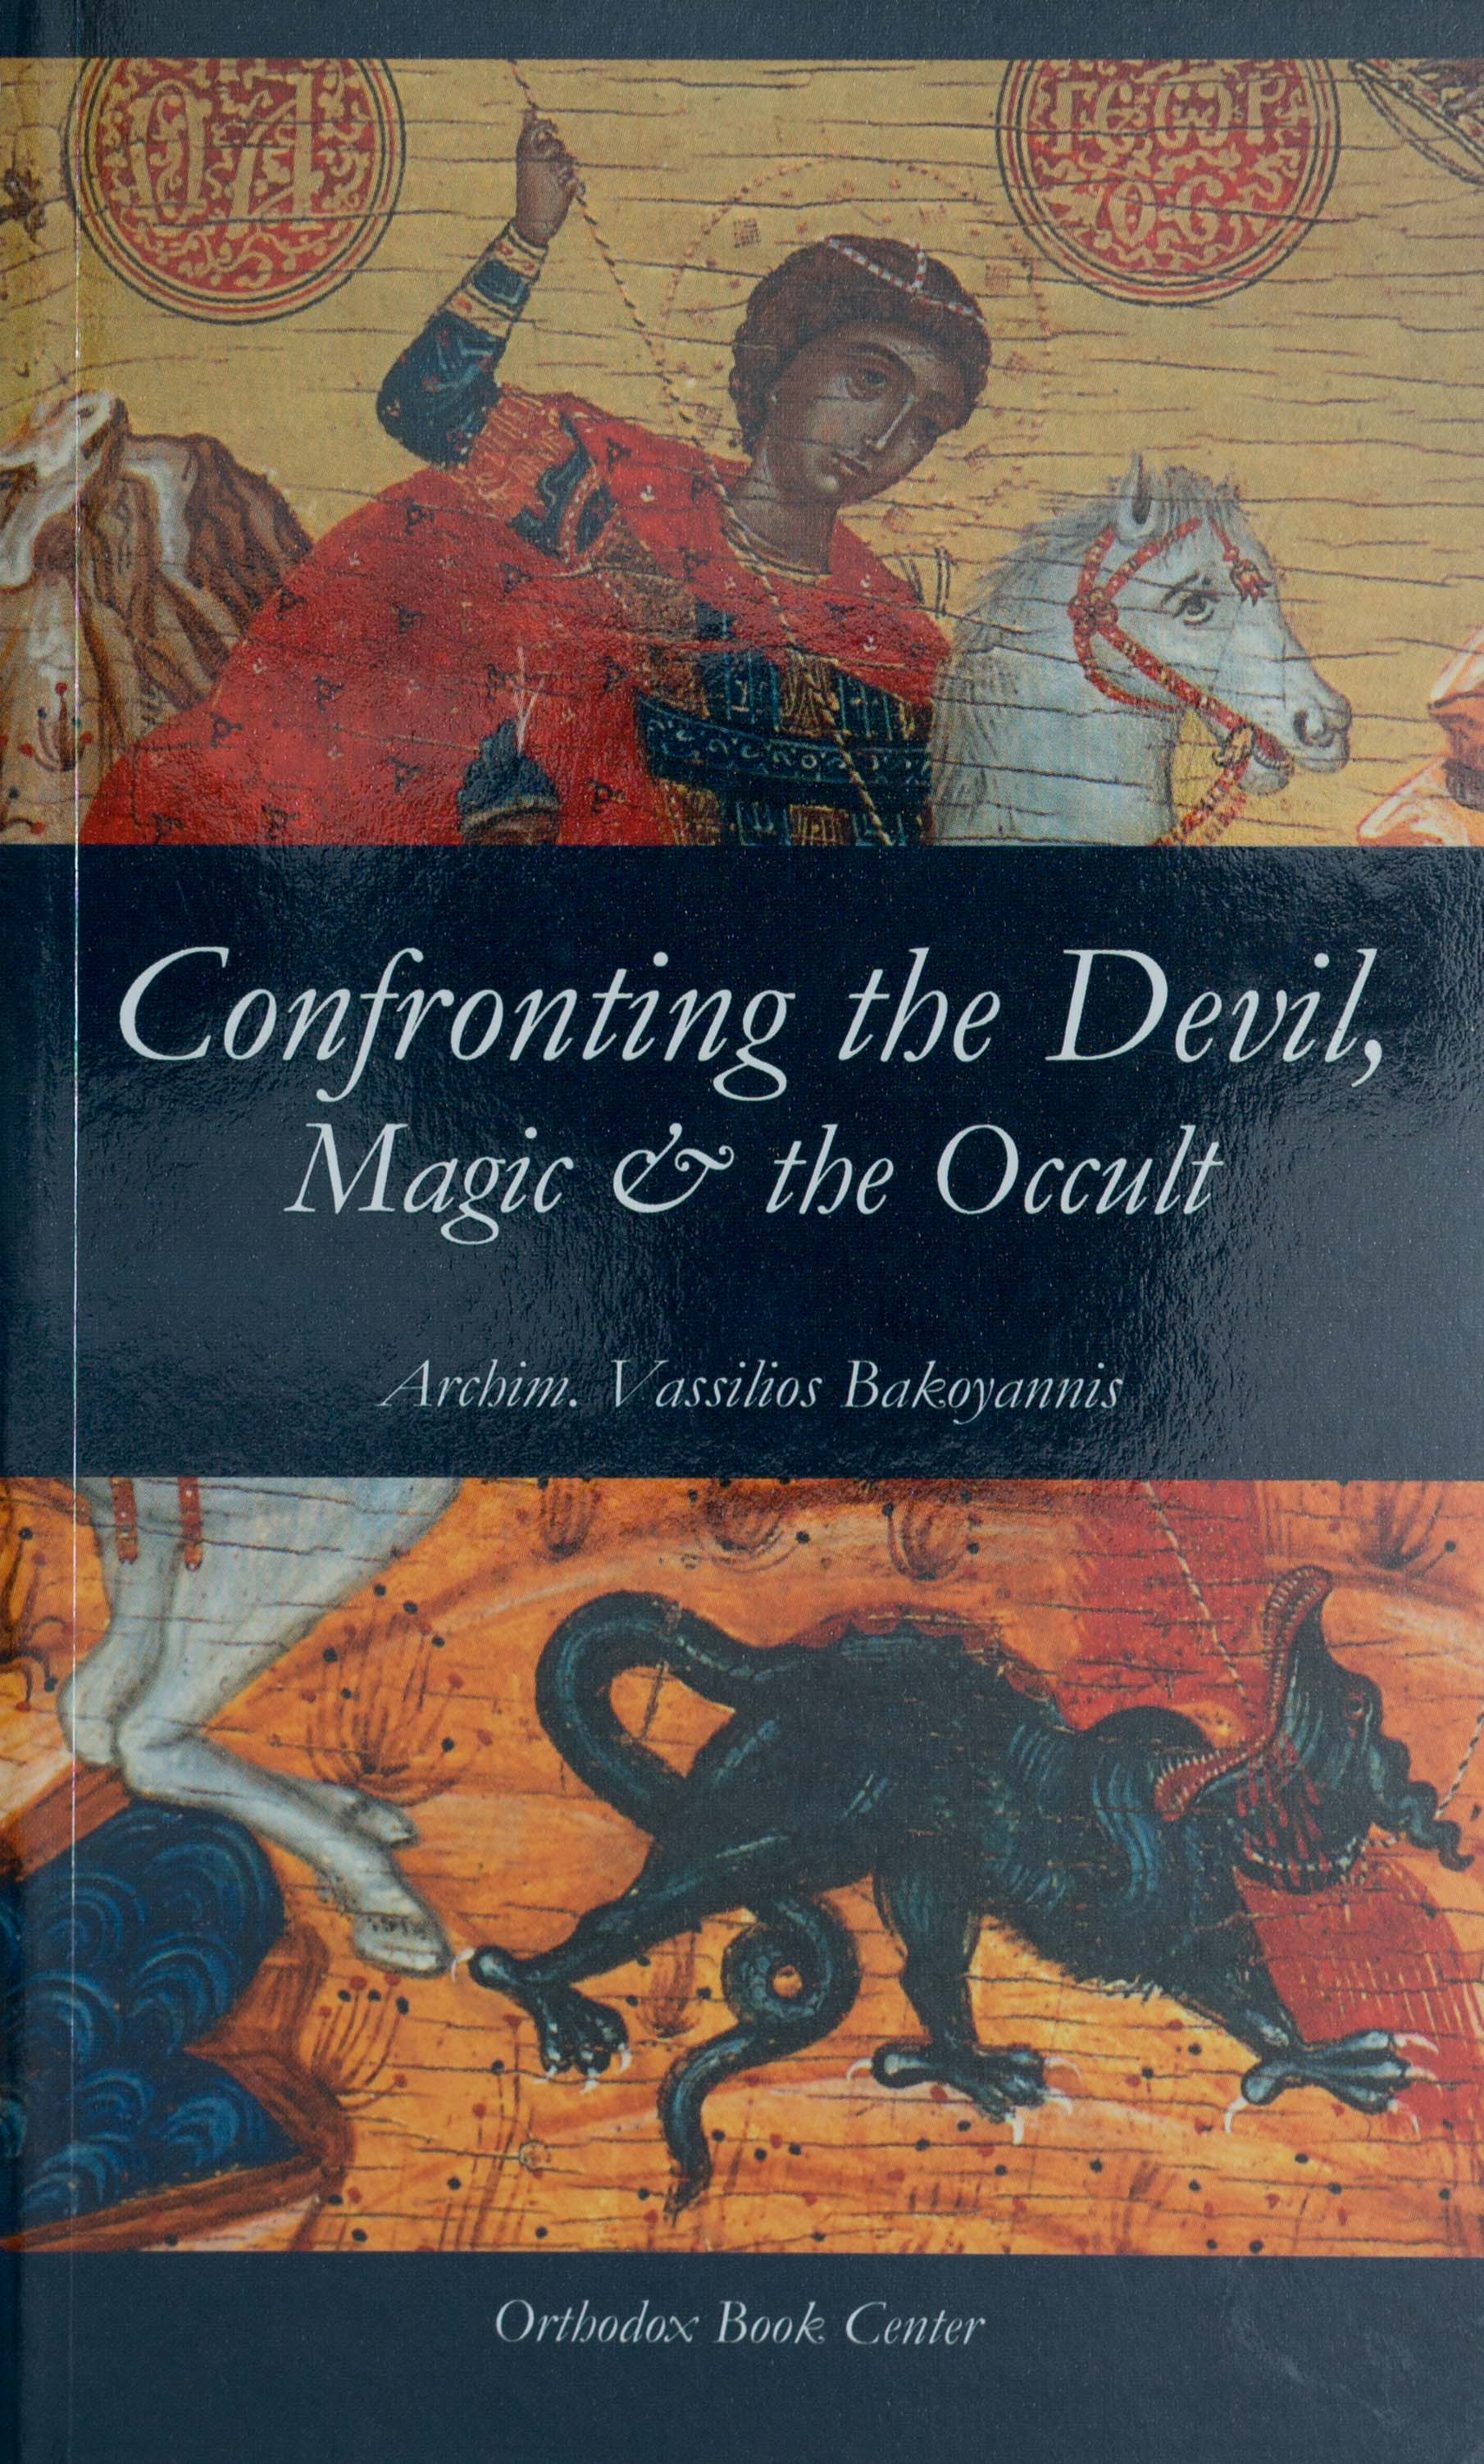 Confronting the Devil, Magic & the Occult Out of Print